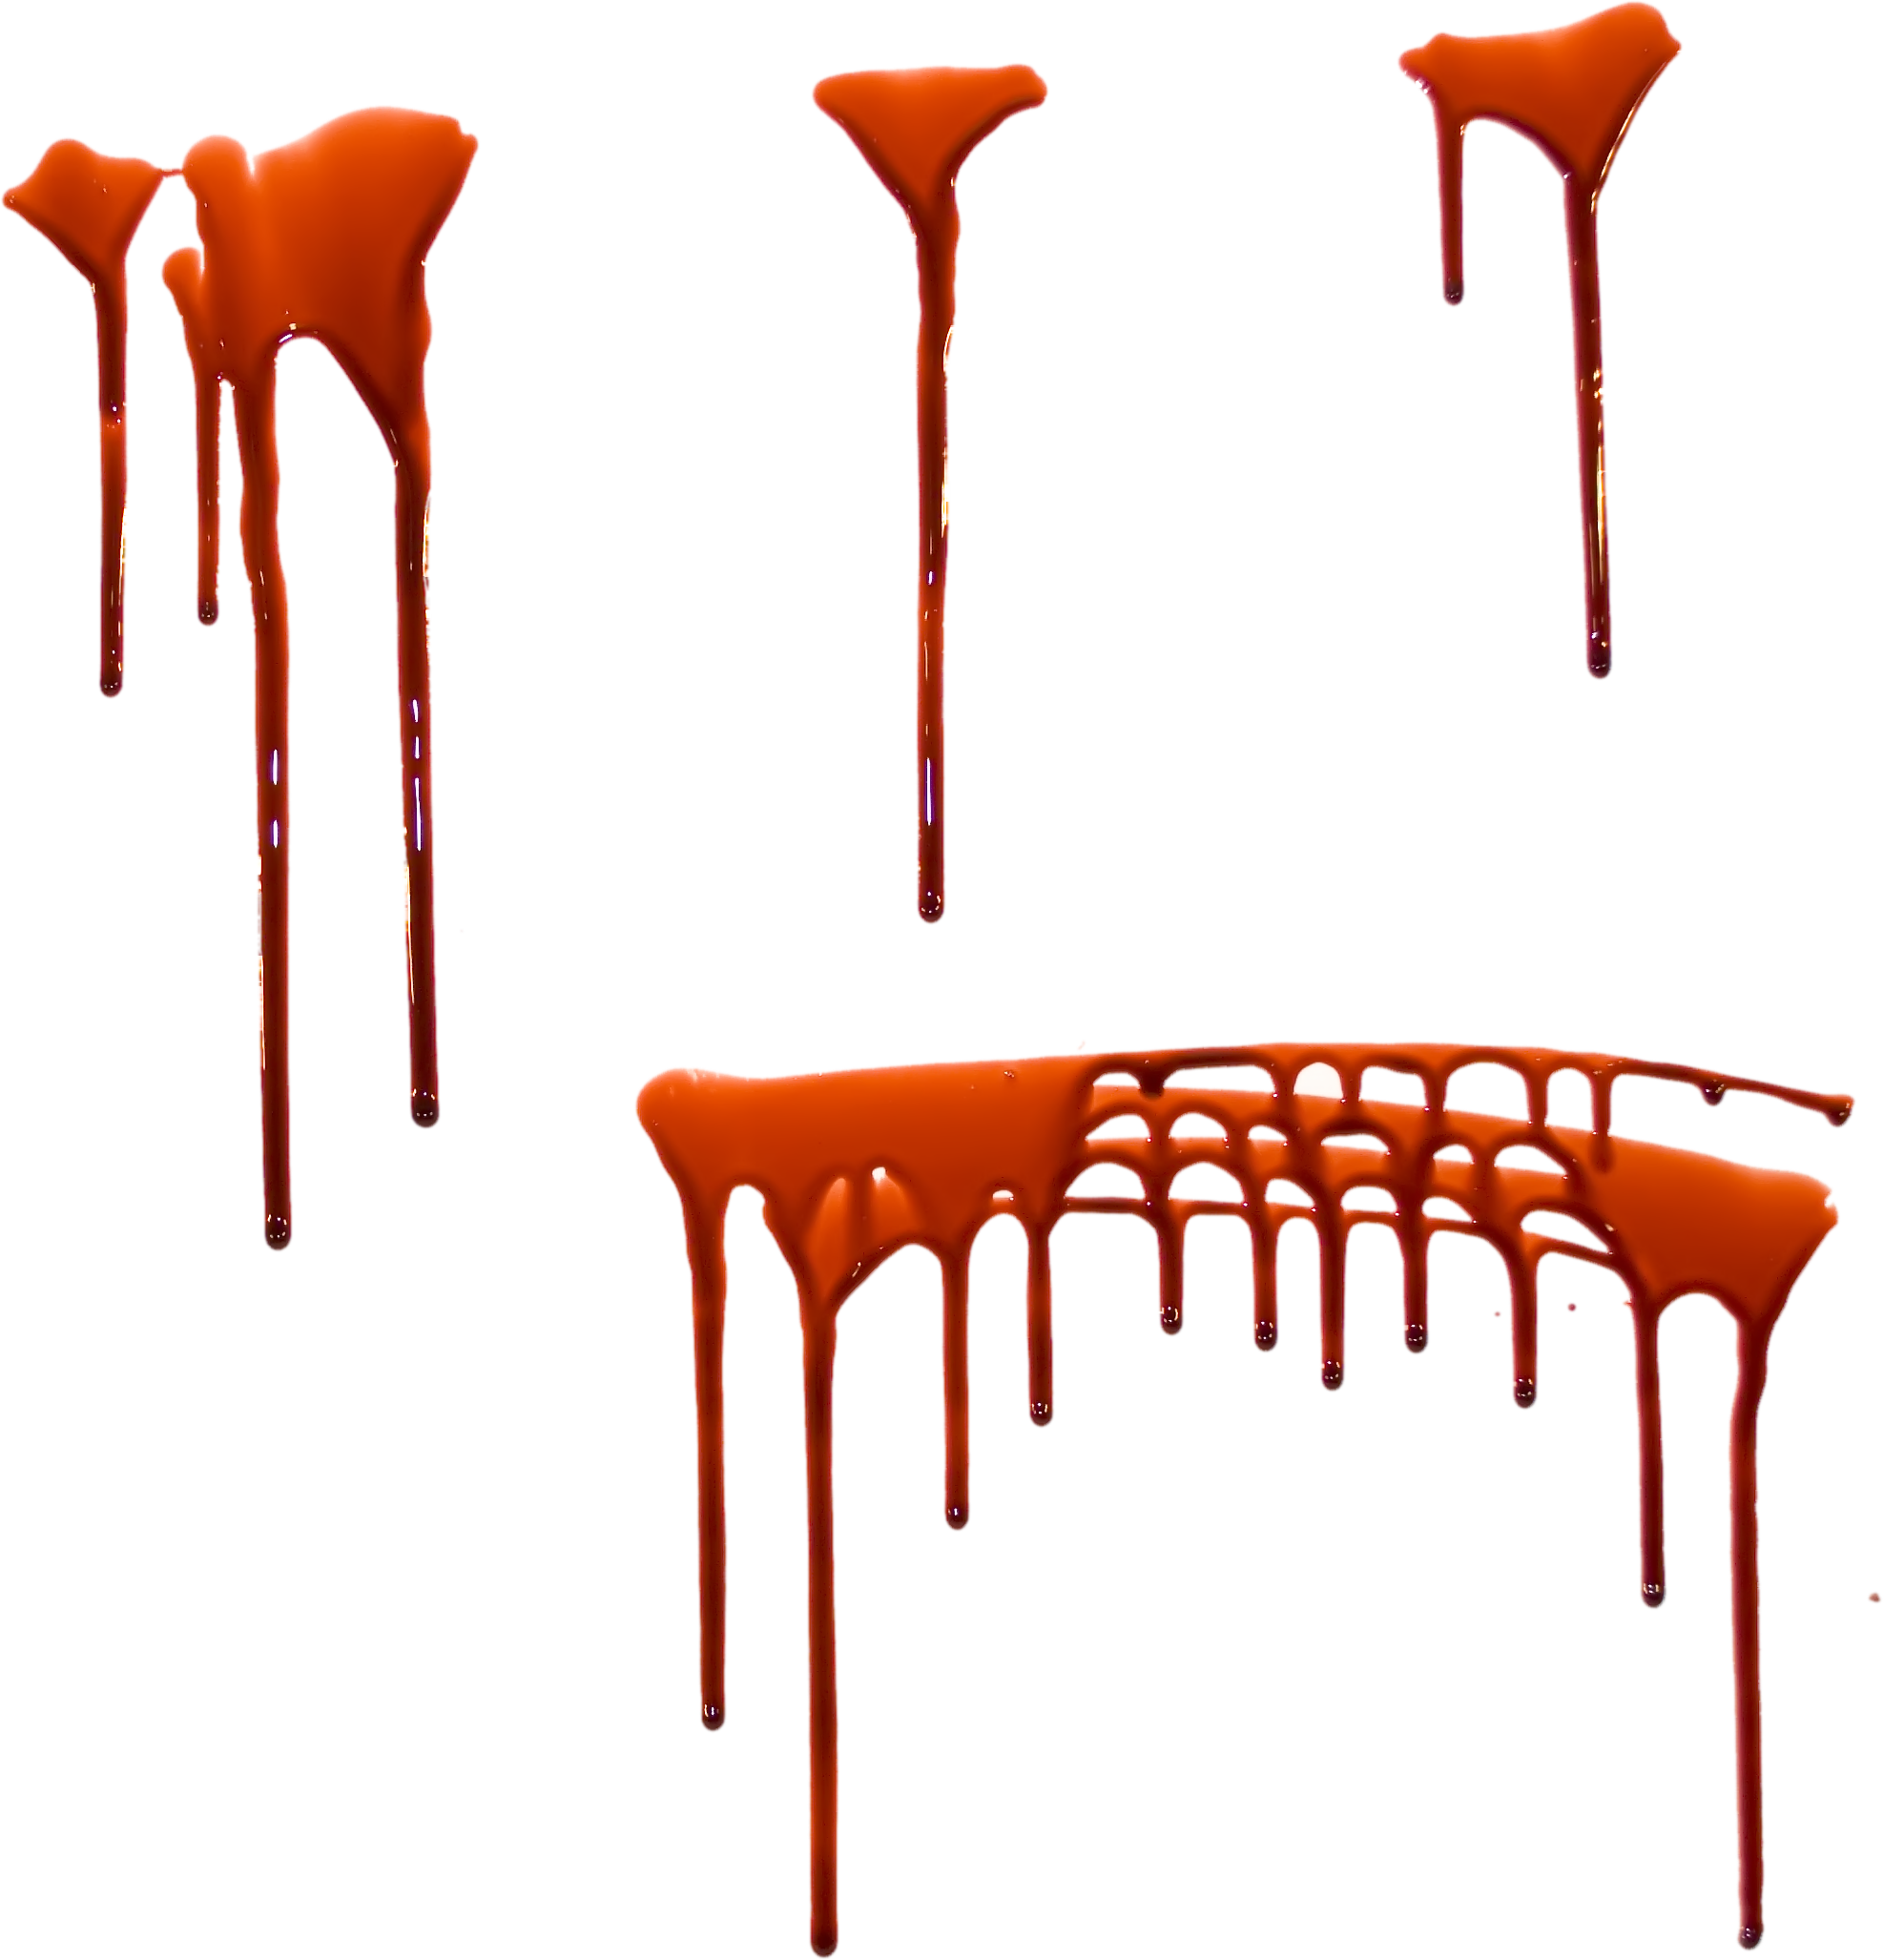 Realistic blood drip png. Images free download splashes